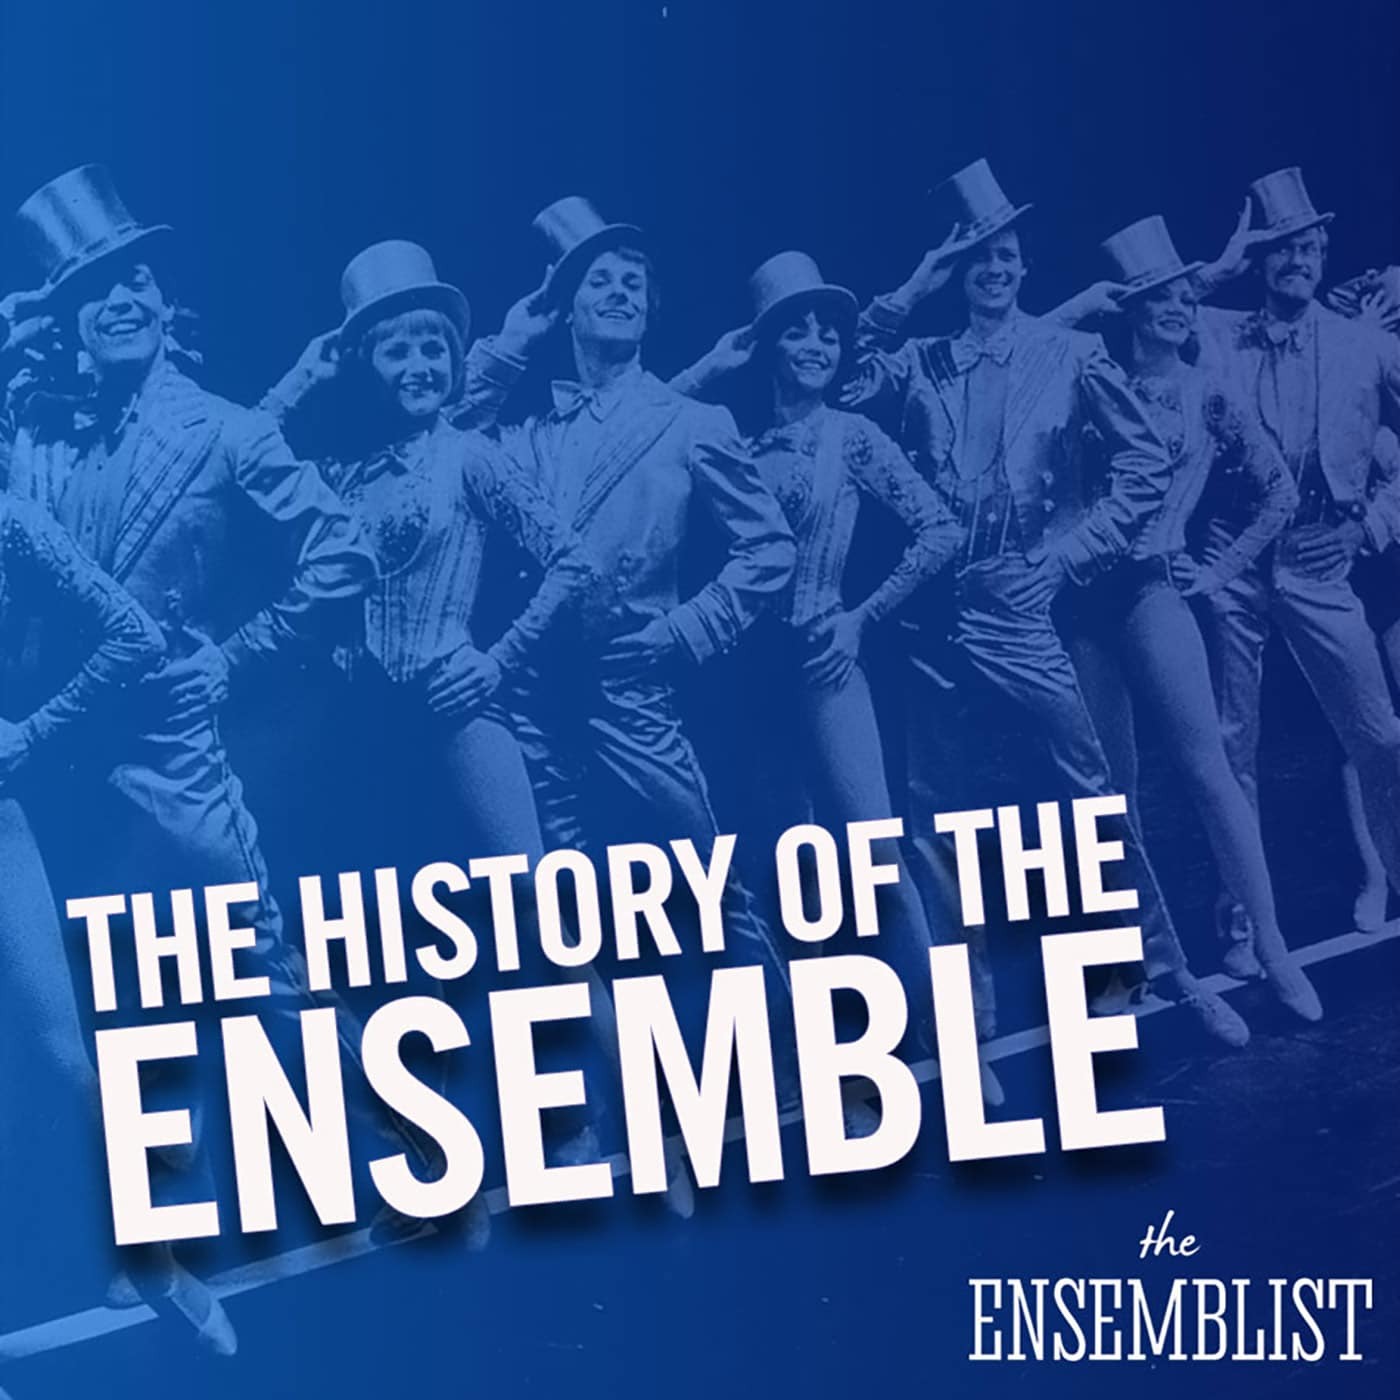 The Ensemblist The Ensemblist #258 - The History of the Ensemble: A Chorus Line (feat. Michael Berresse, Catherine Ricafort)